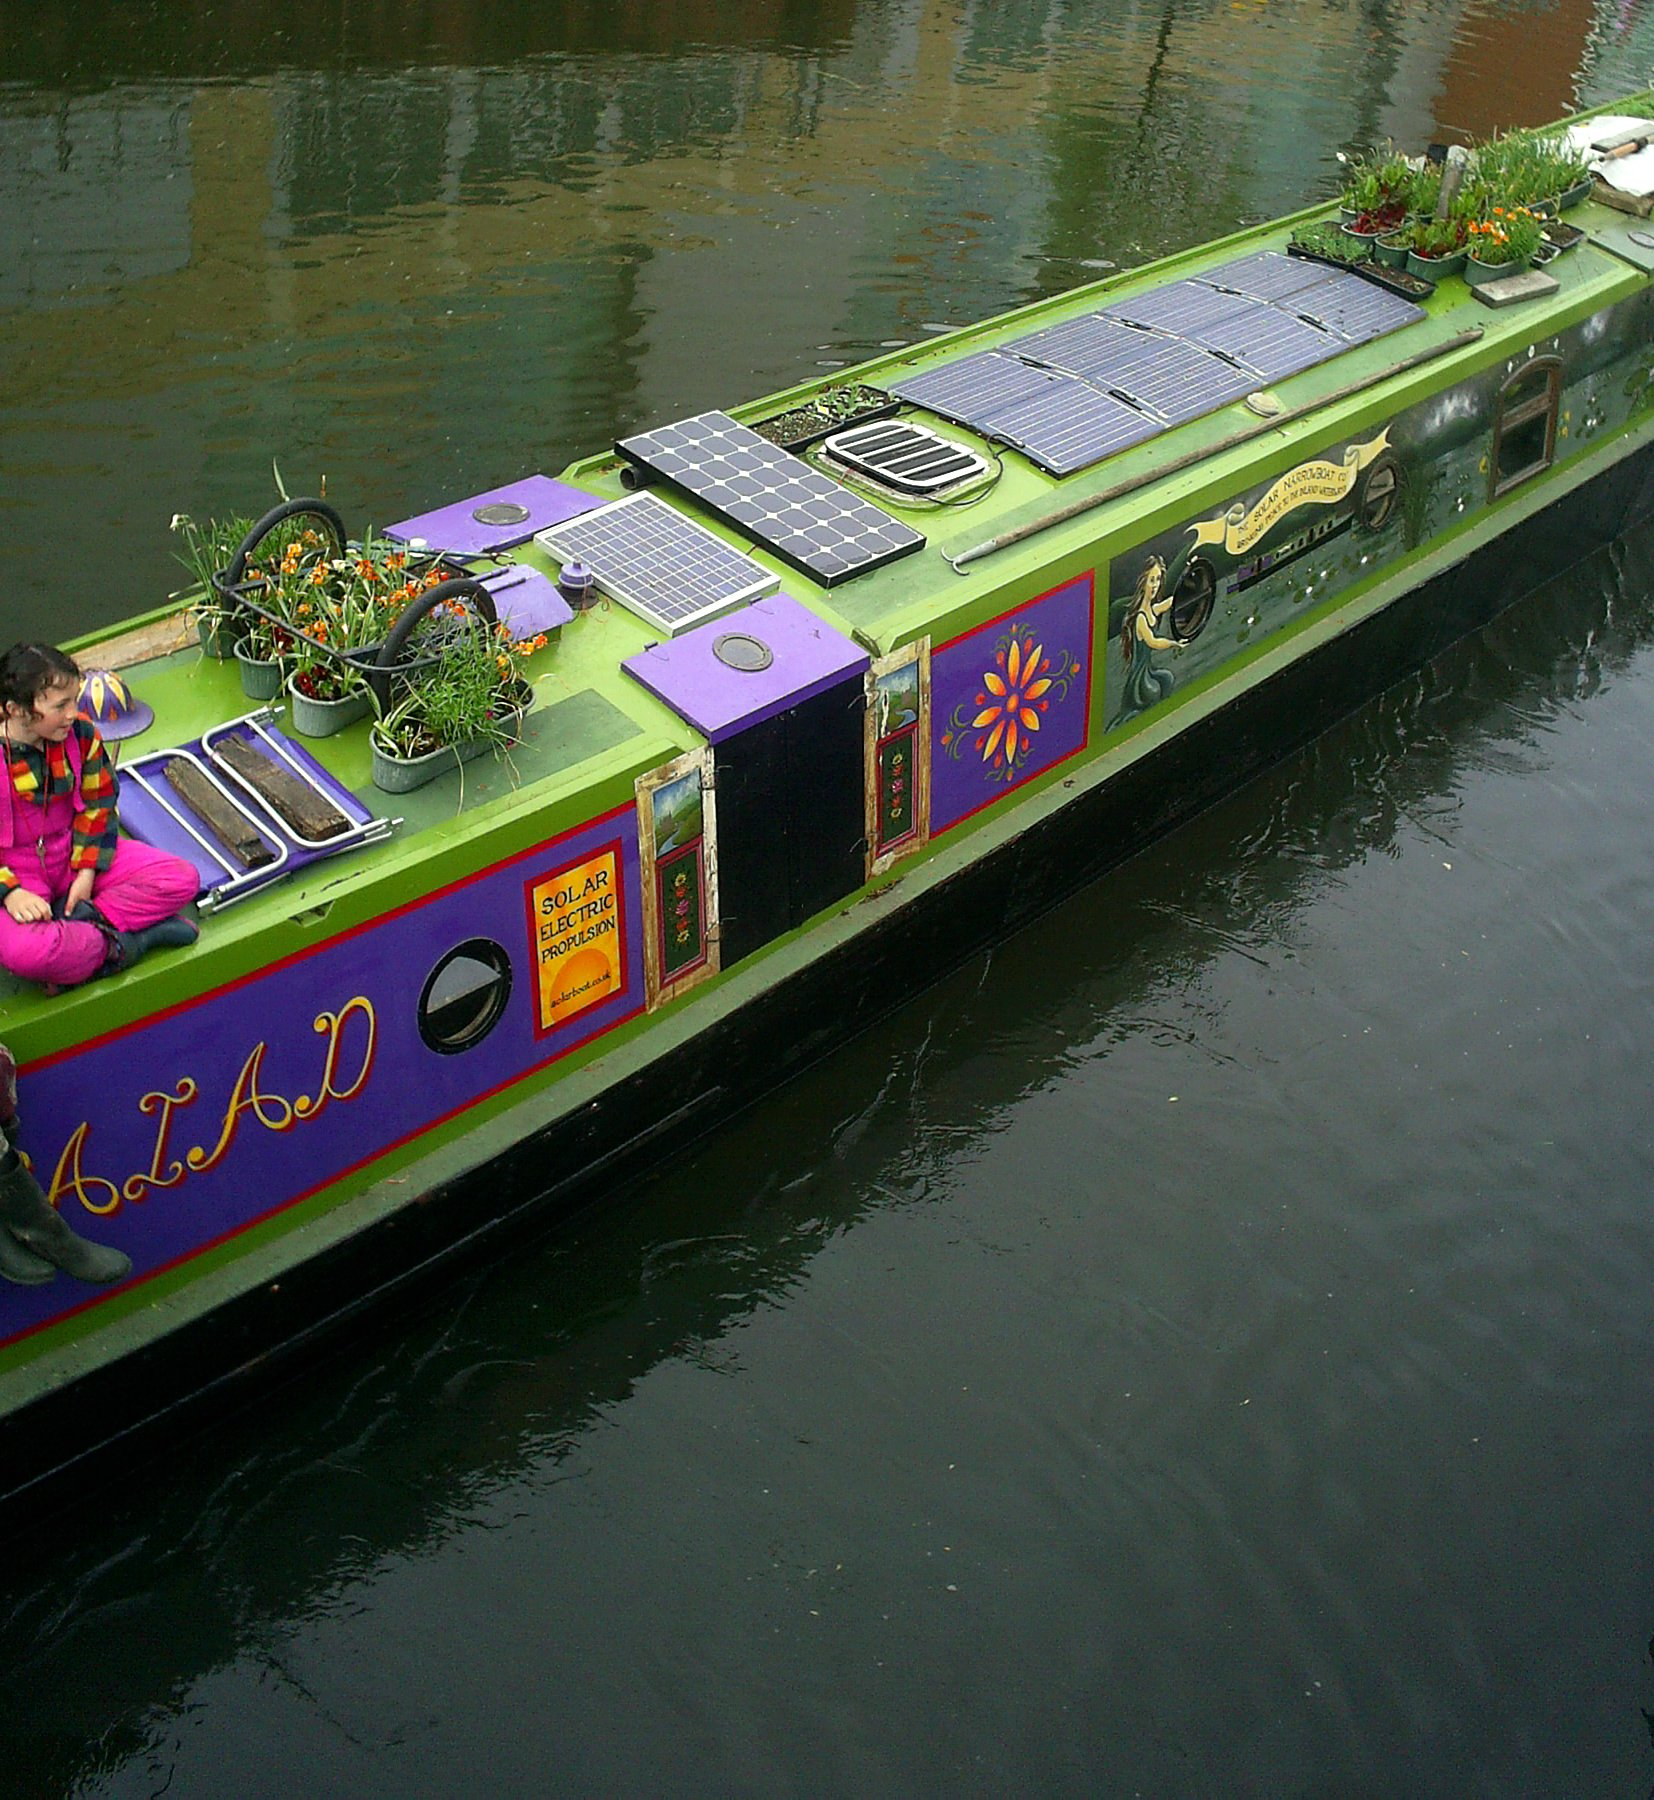 Images like: RIVER AVON NARROW BOAT CRUISE (Showing 0 - 100 of